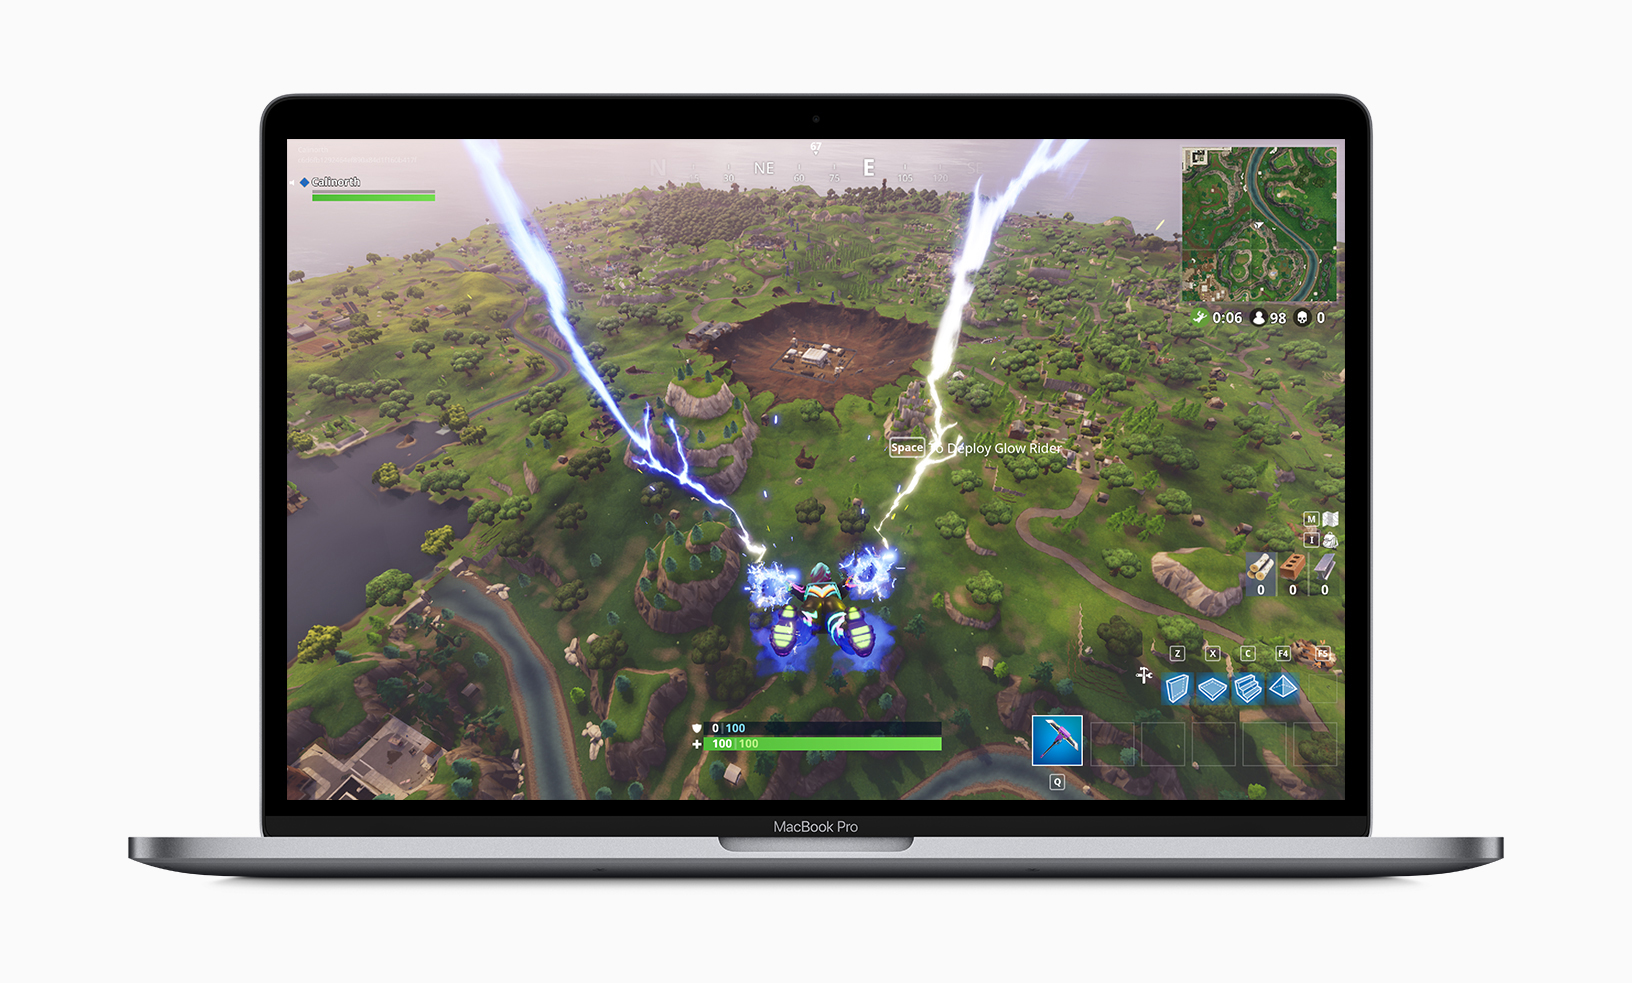 Gaming is also possible on the Macbook Pro 2019